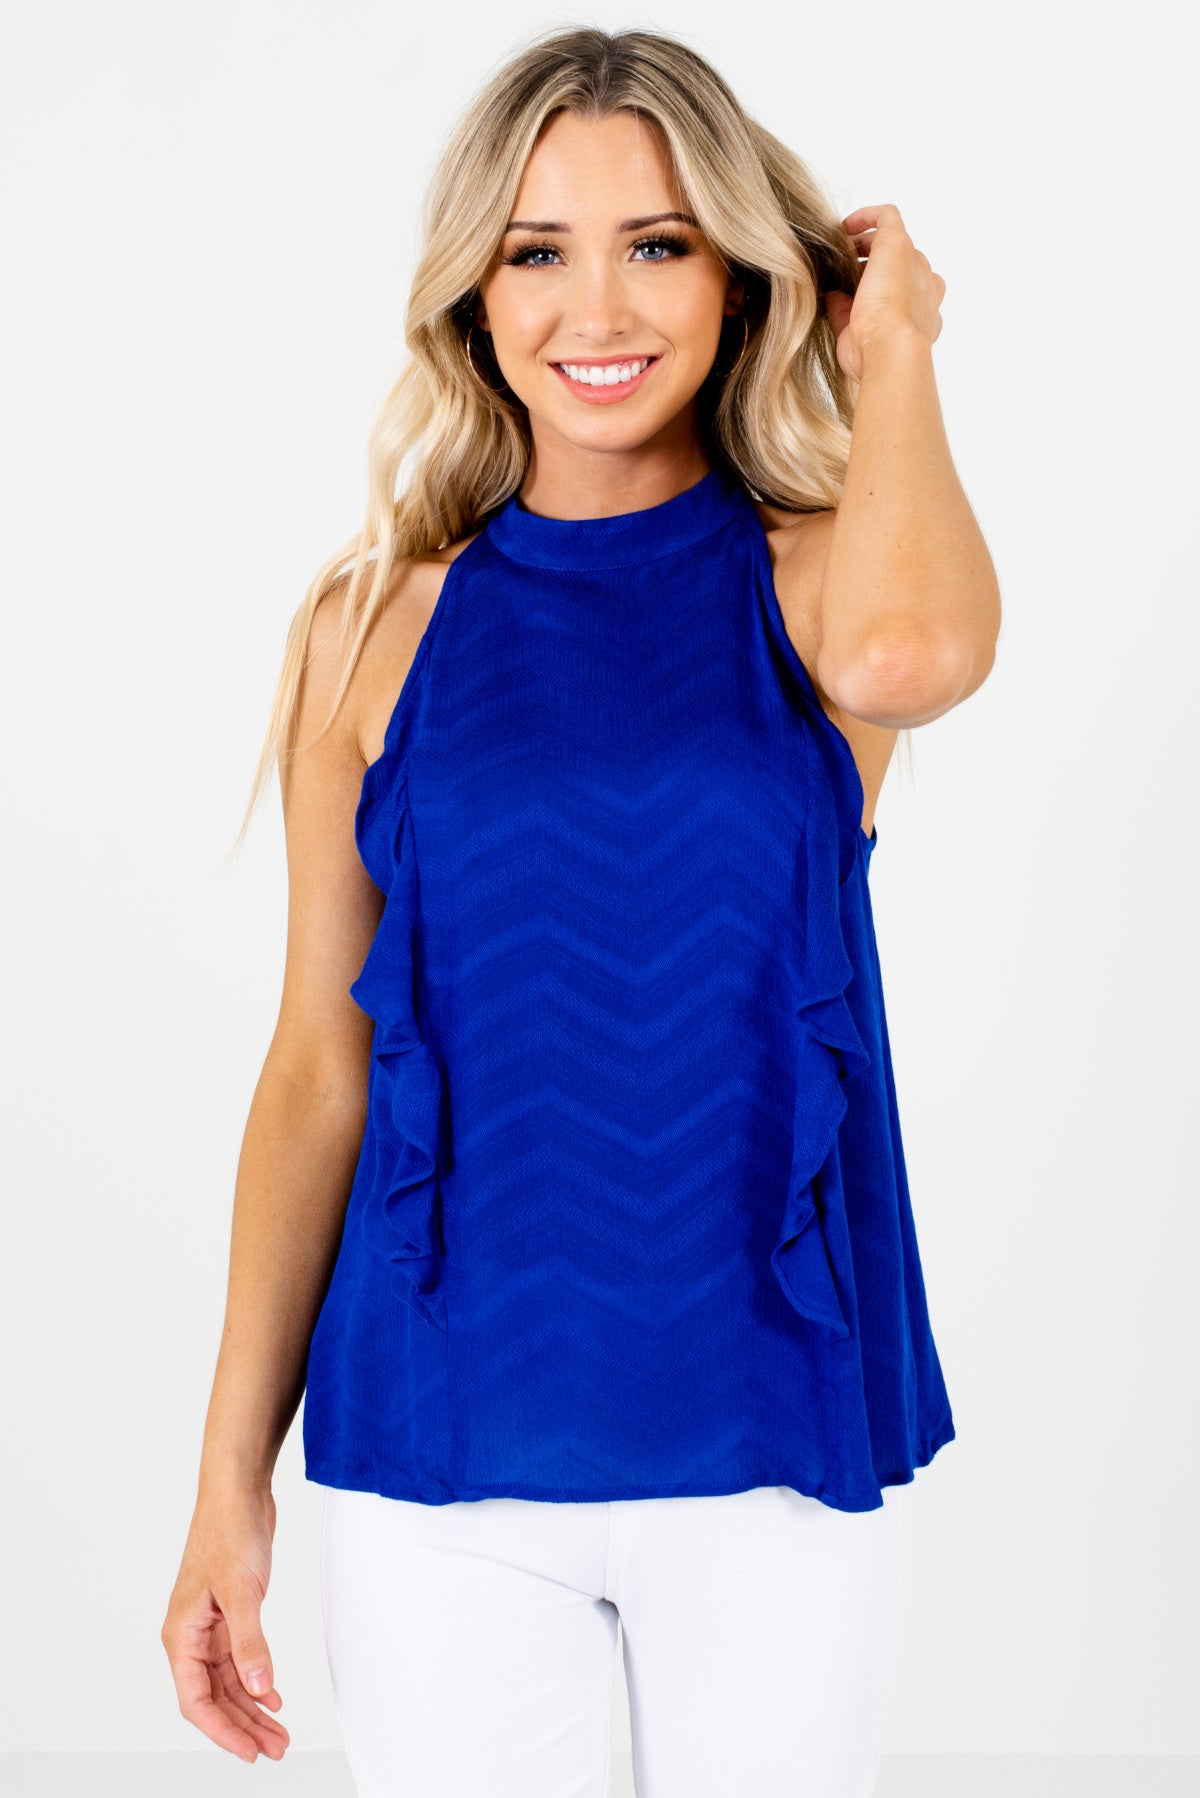 Royal Blue Halter Style Boutique Tops for Women